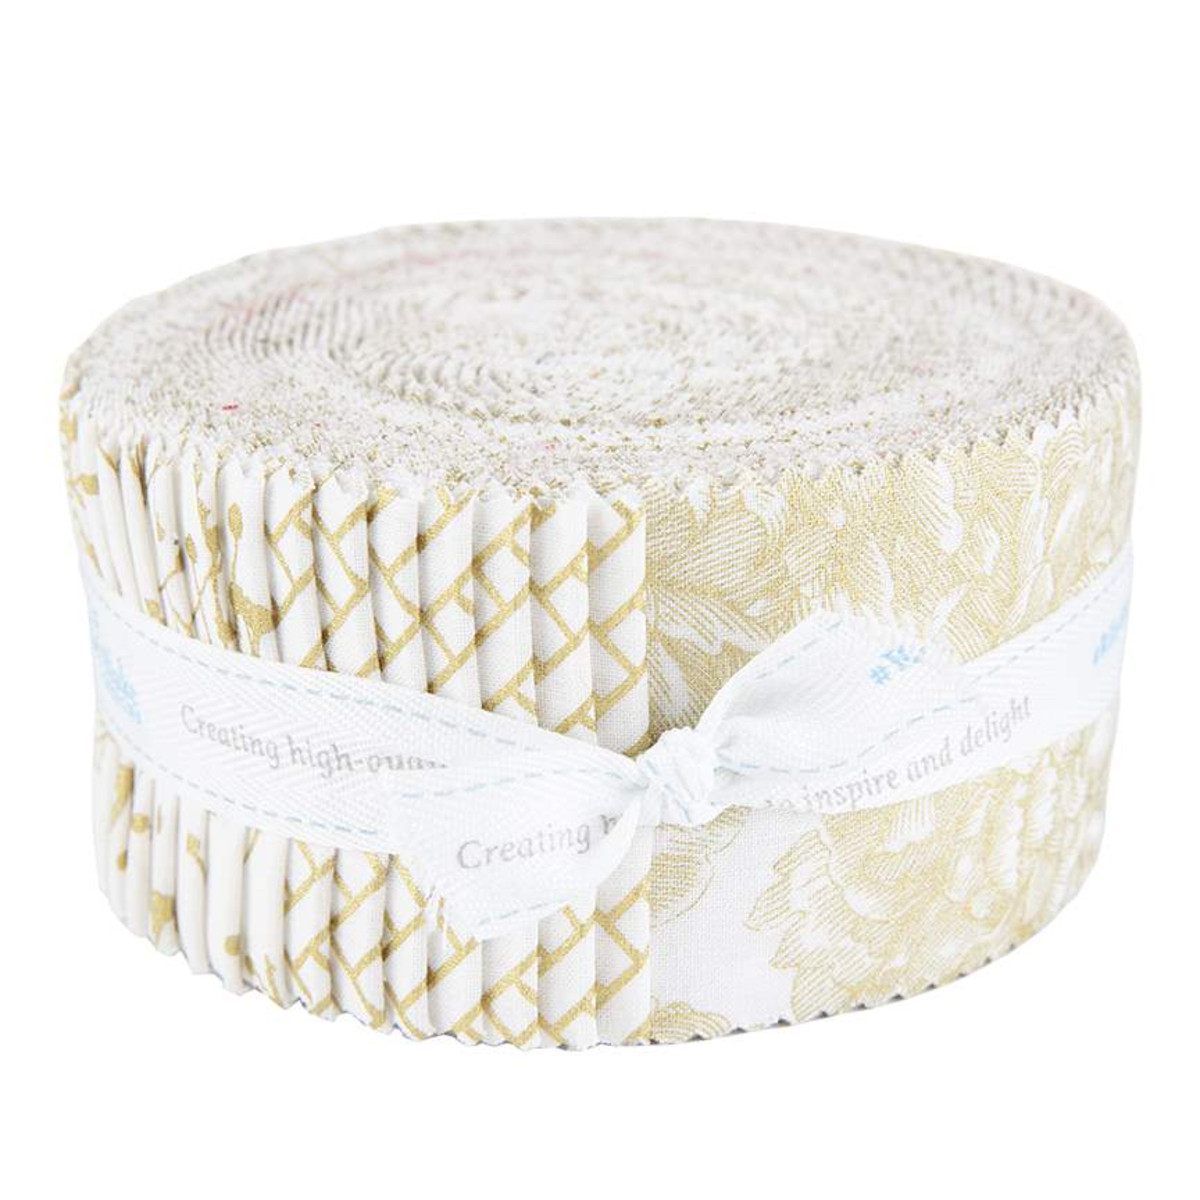 Riley Blake Jelly Roll - Classic Caskata Gold